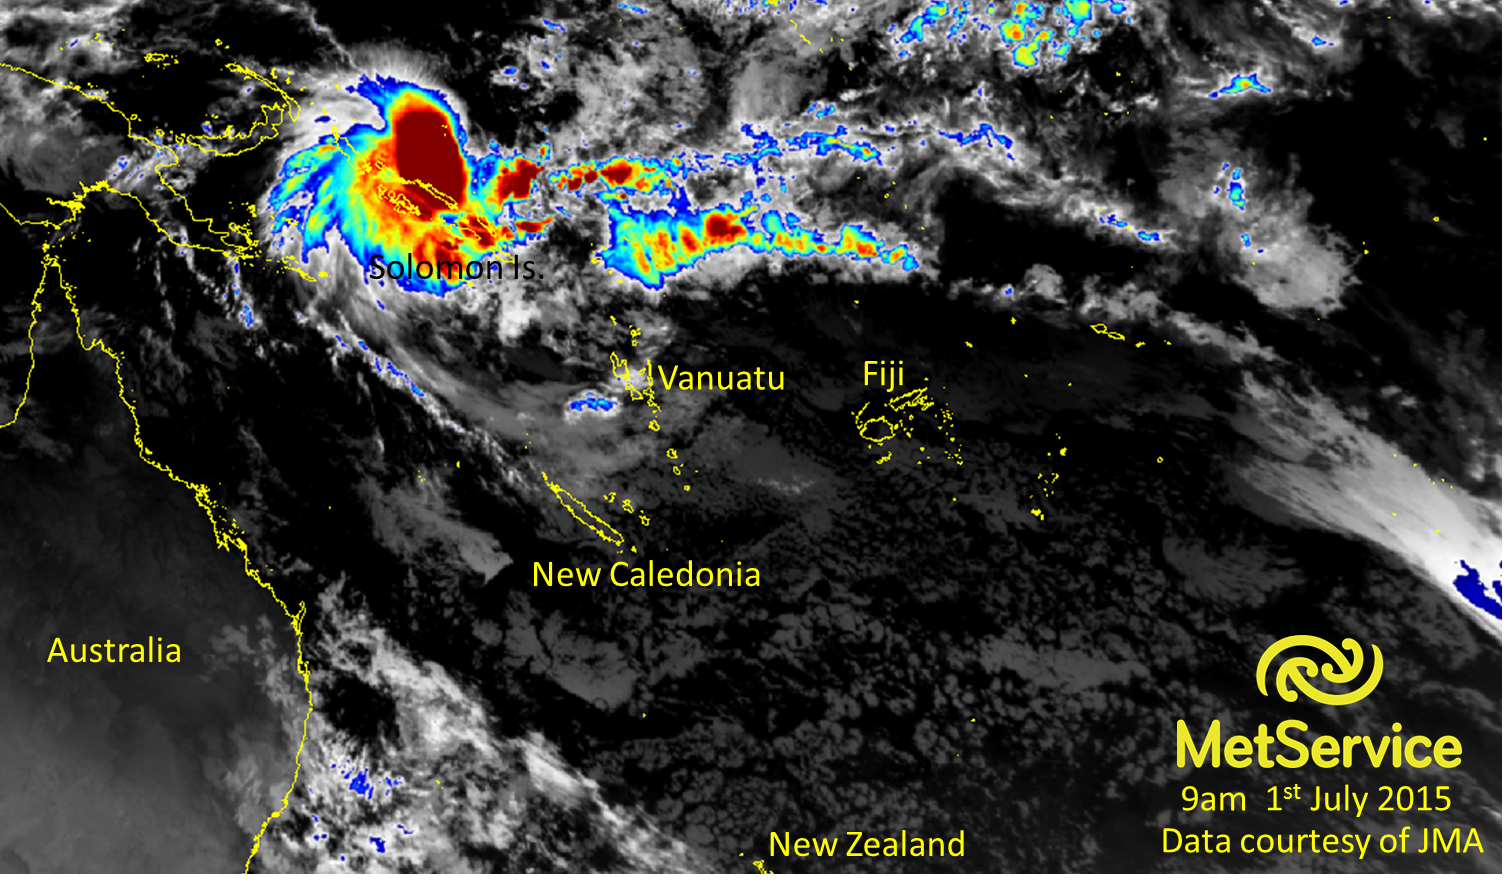 Enhanced infra-red satellite image showing TC Raquel just to the north of the Solomon Islands